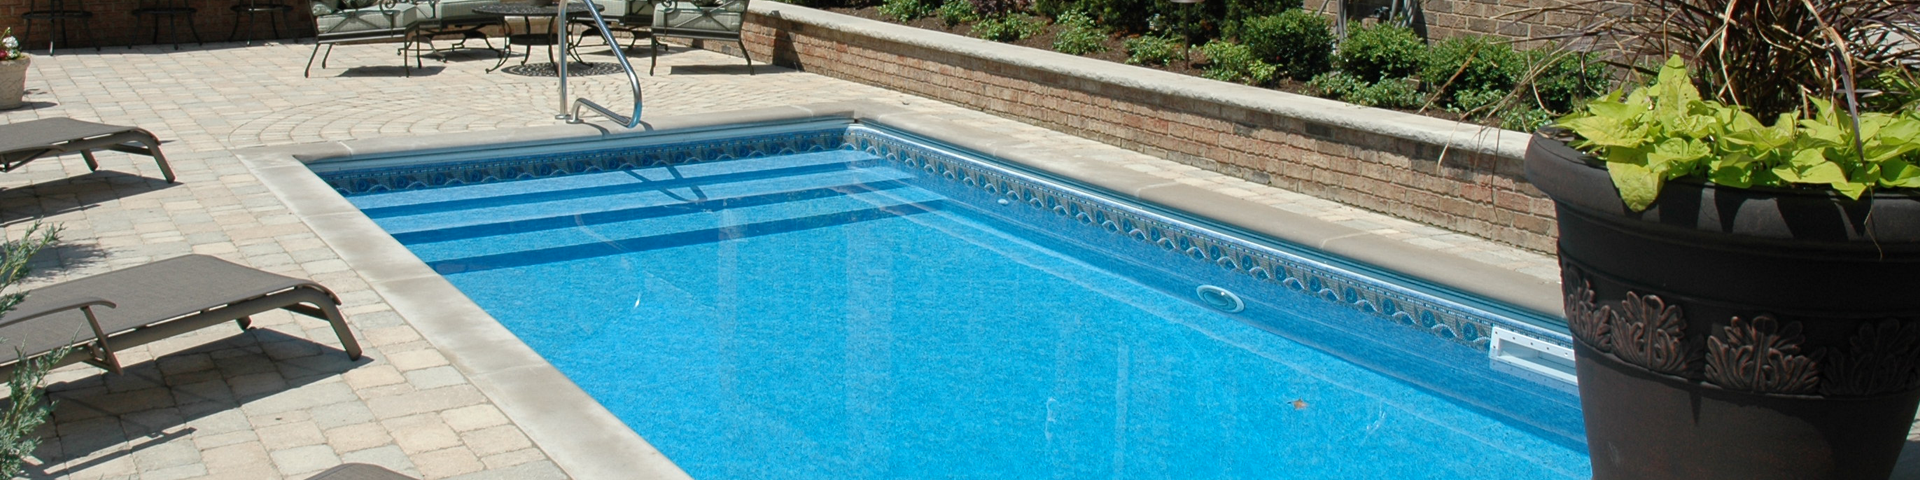 Vinyl Liner Pools Pro Edge Pools